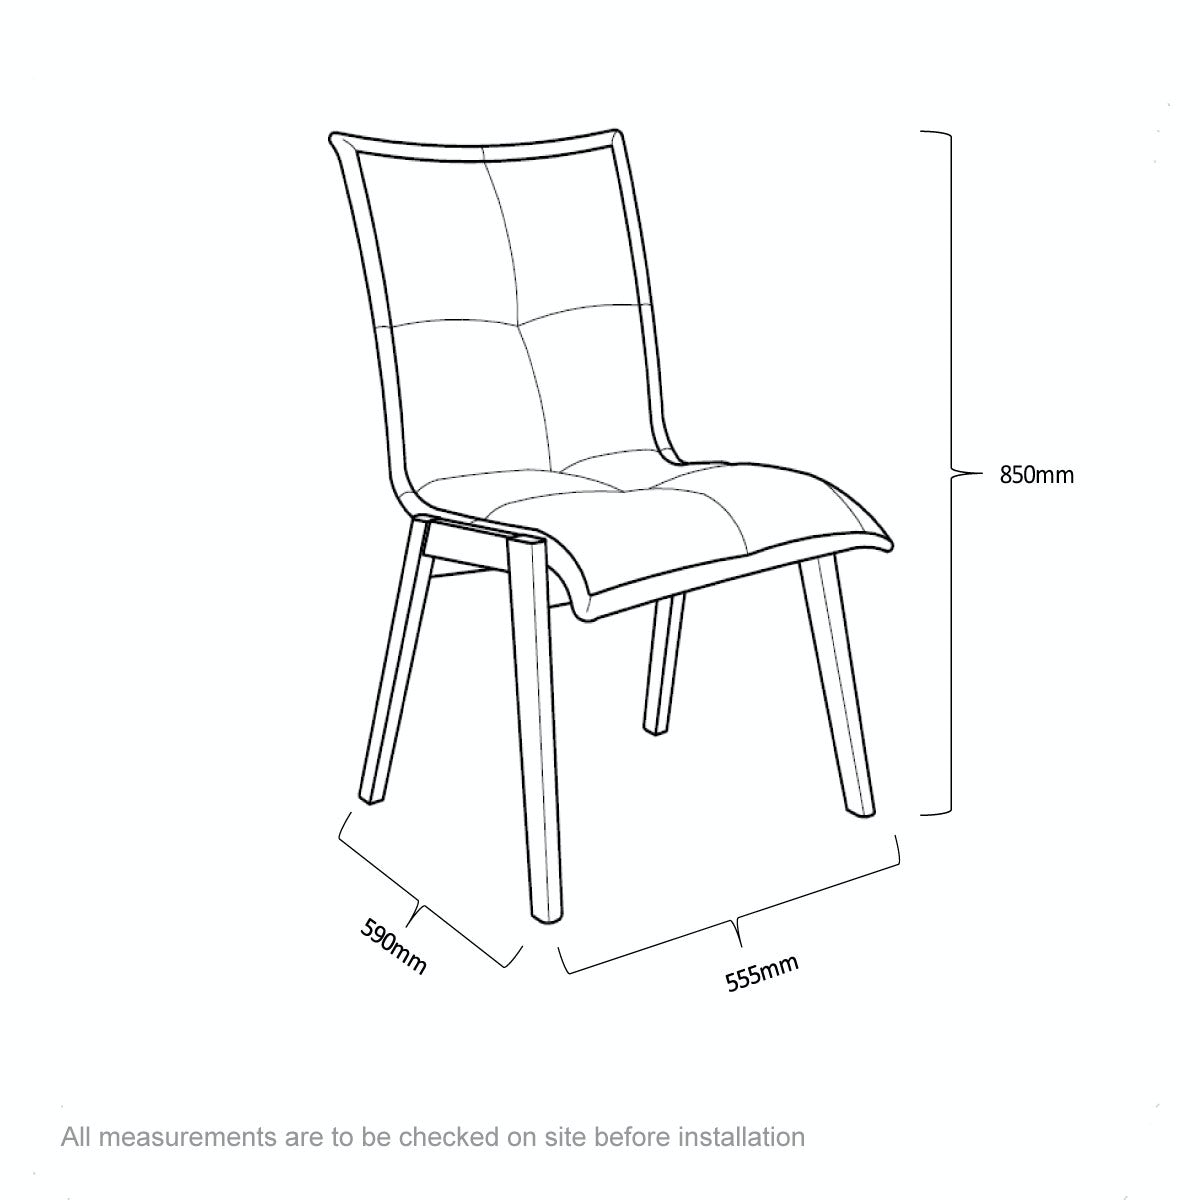 Dimensions for Hadley oak and beige pair of dining chairs